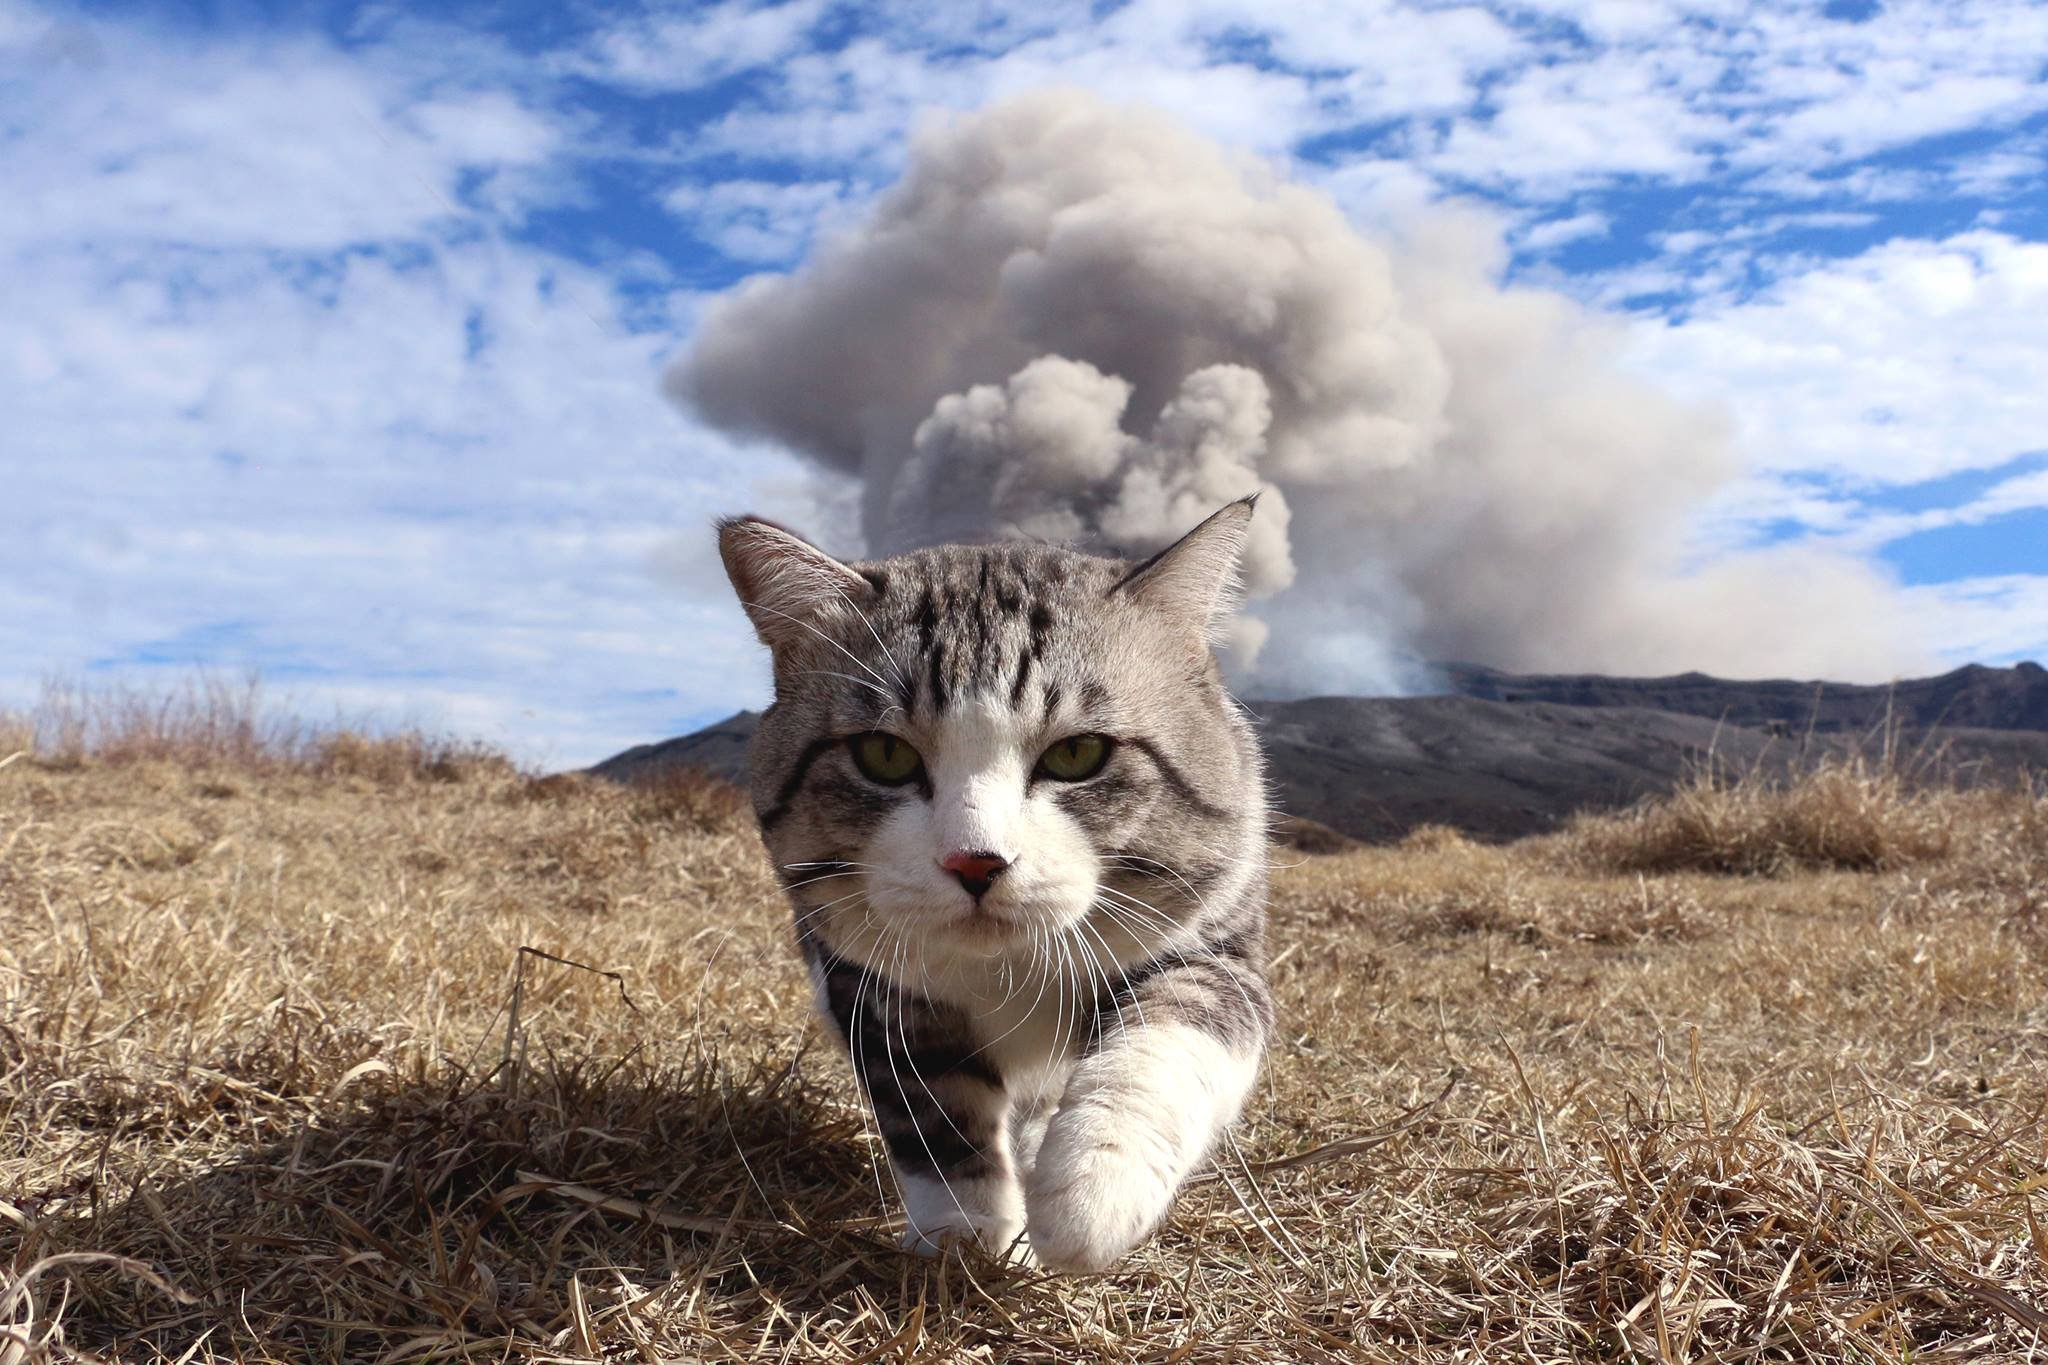 Cool cats don't look at explosions